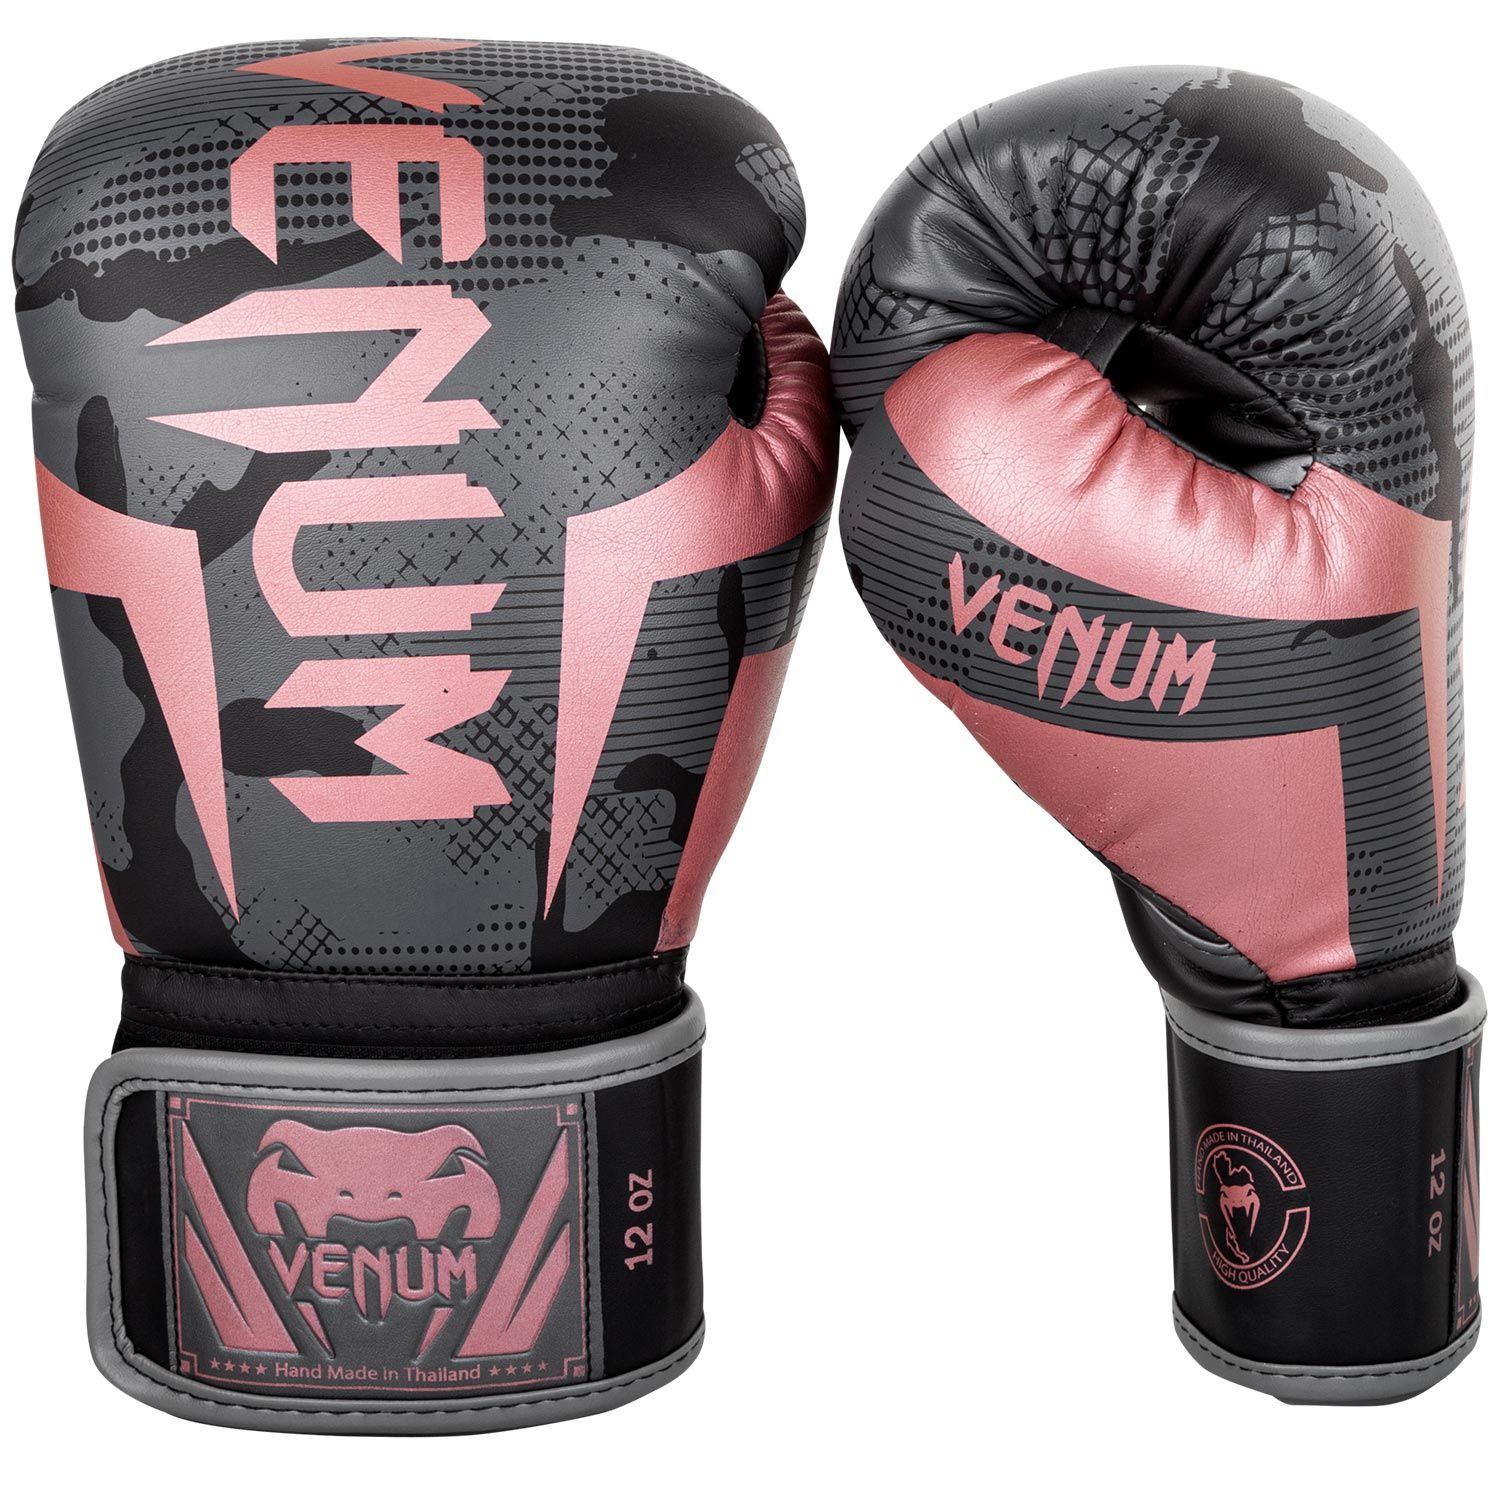 Venum Elite Boxing Gloves - Black/Pink Gold